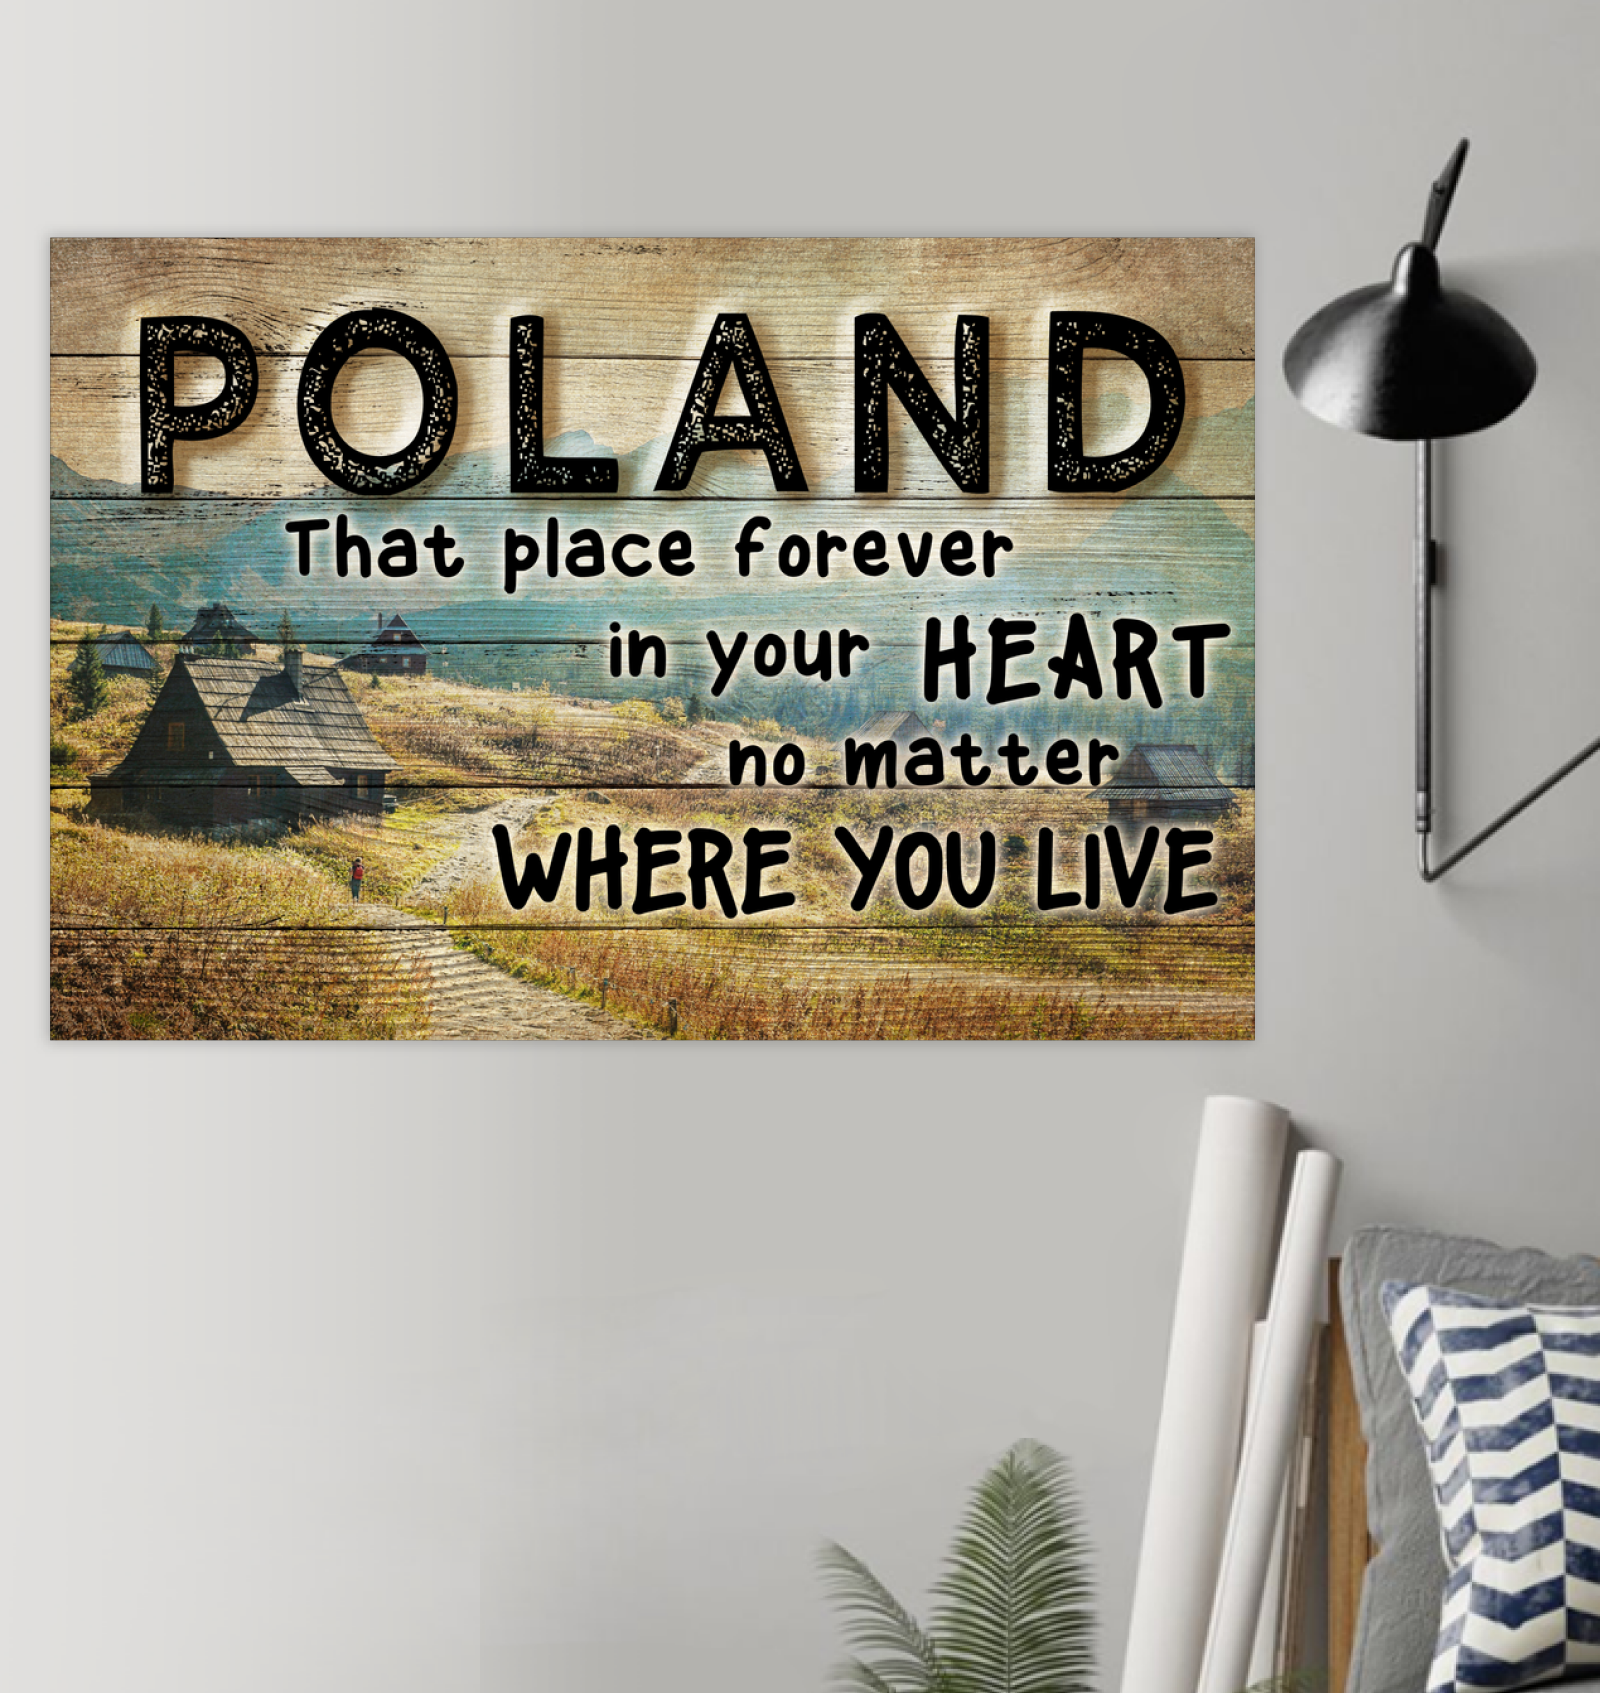 POLAND THAT PLACE FOREVER IN YOUR HEART NO MATTER WHERE YOUR GO